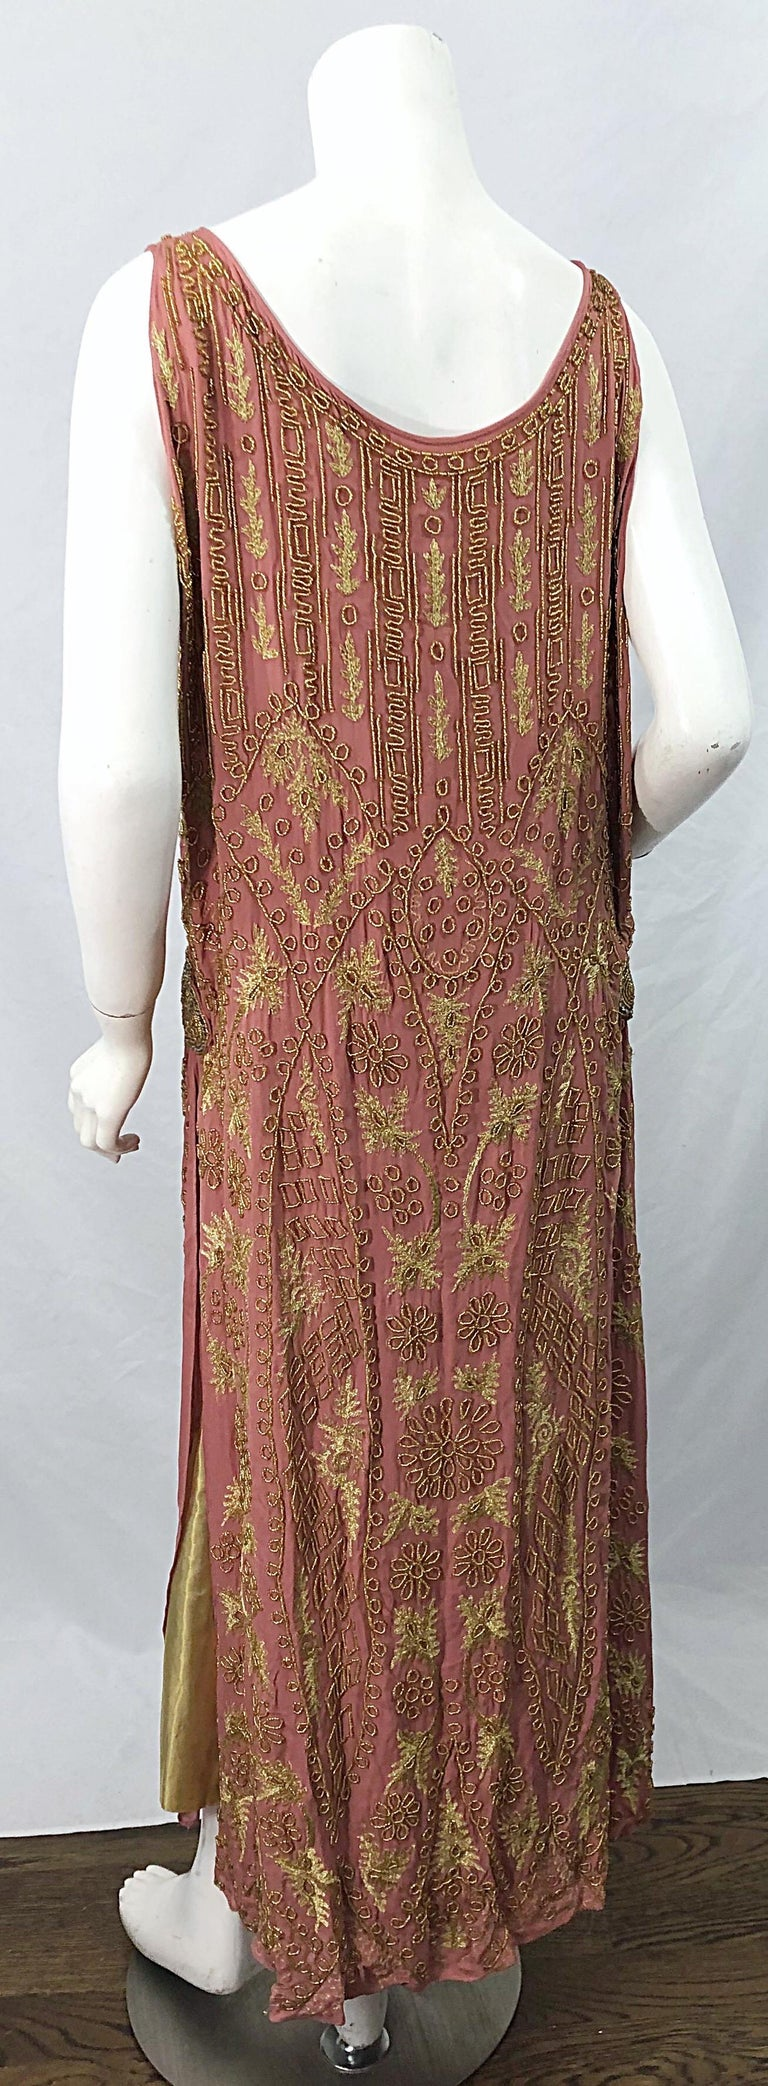 1920s French Couture Pink + Gold Beaded Gatsby Roaring 20s Vintage Flapper Dress For Sale 10